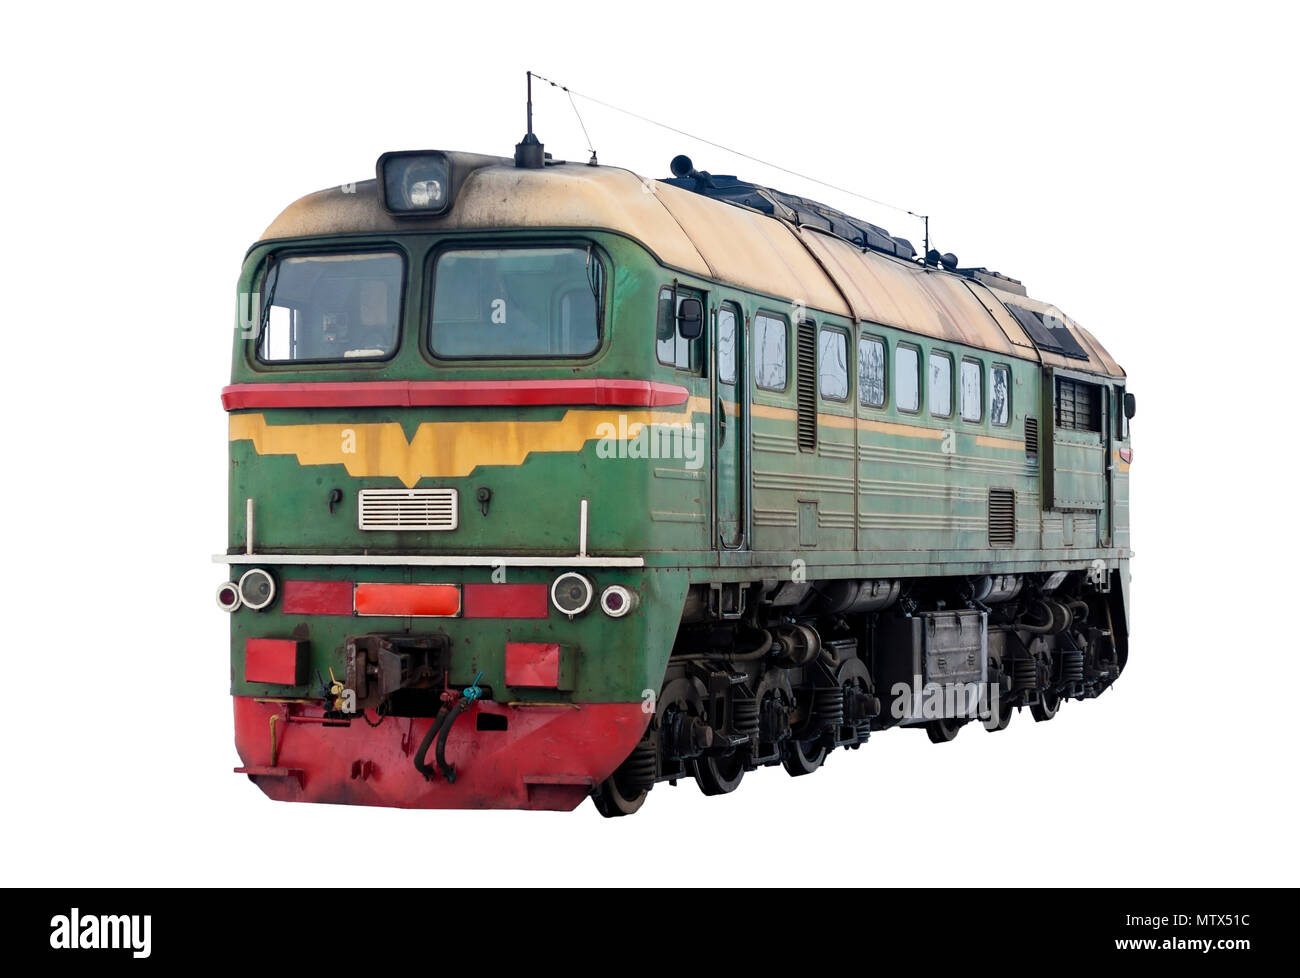 Russian diesel locomotive M62 isolated on white background - Stock Image